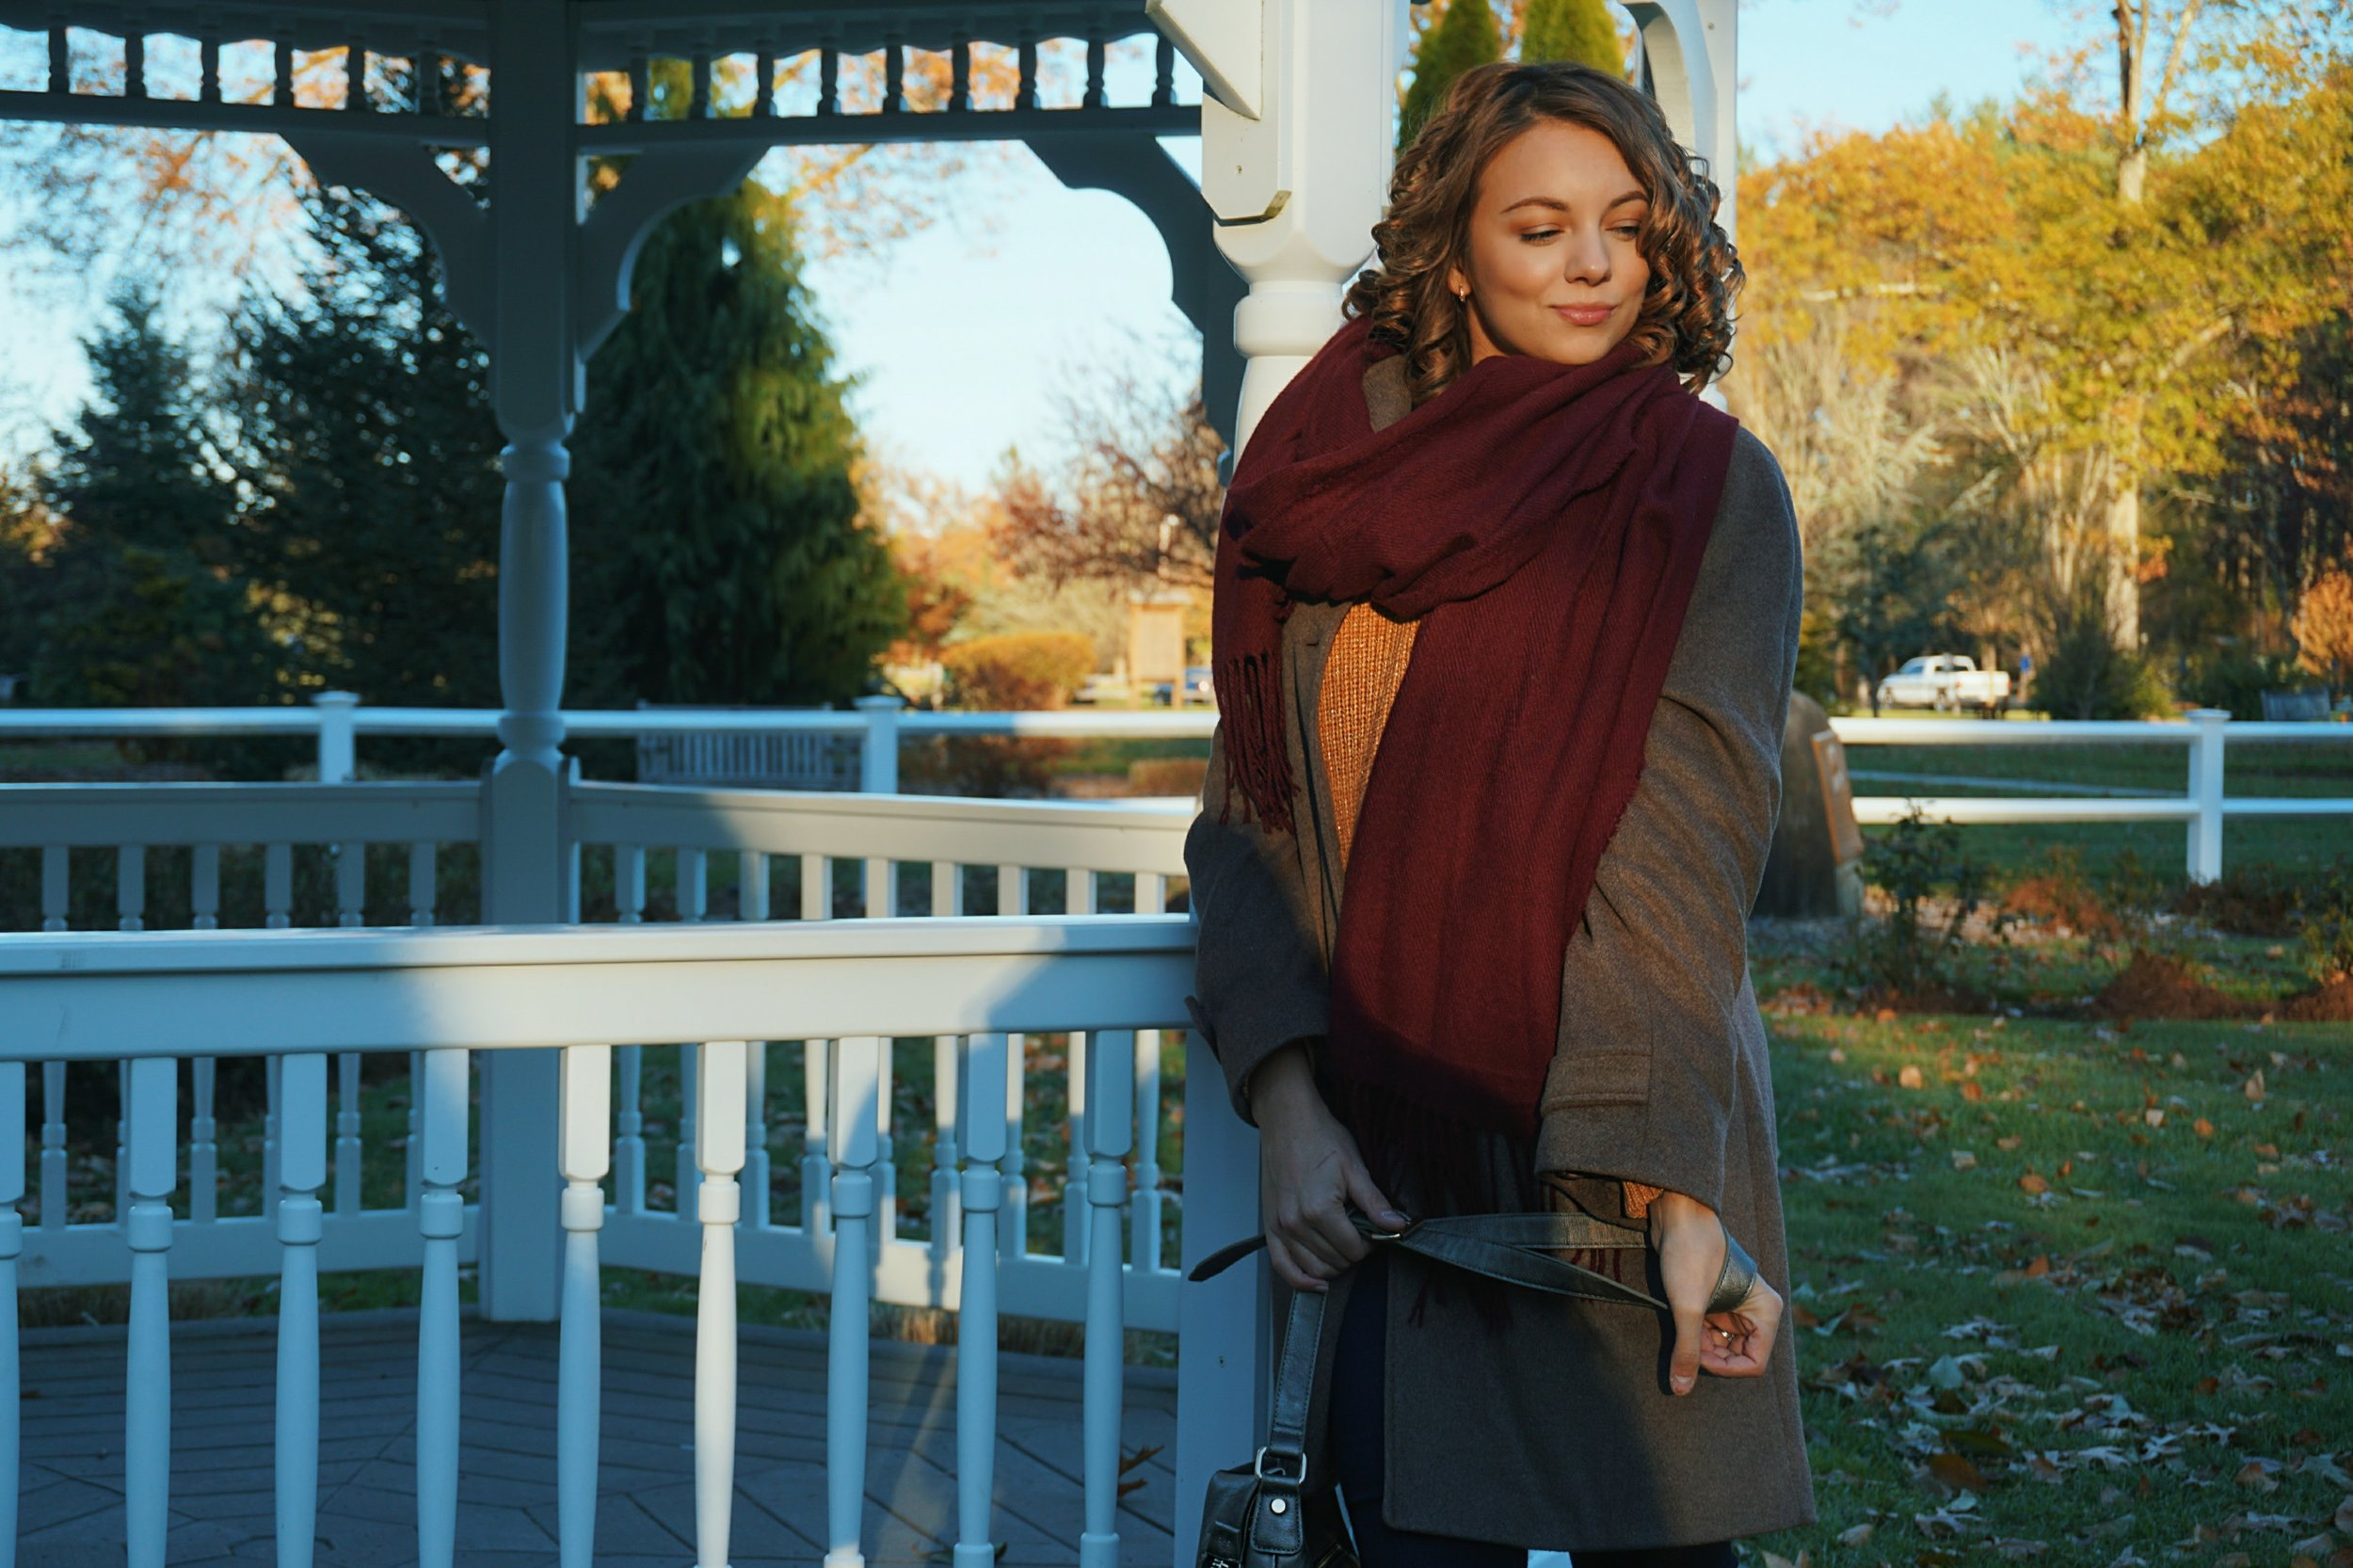 A beauty blogger wearing a fall look: brown coat and sweater, maroon scarf, and gray purse.